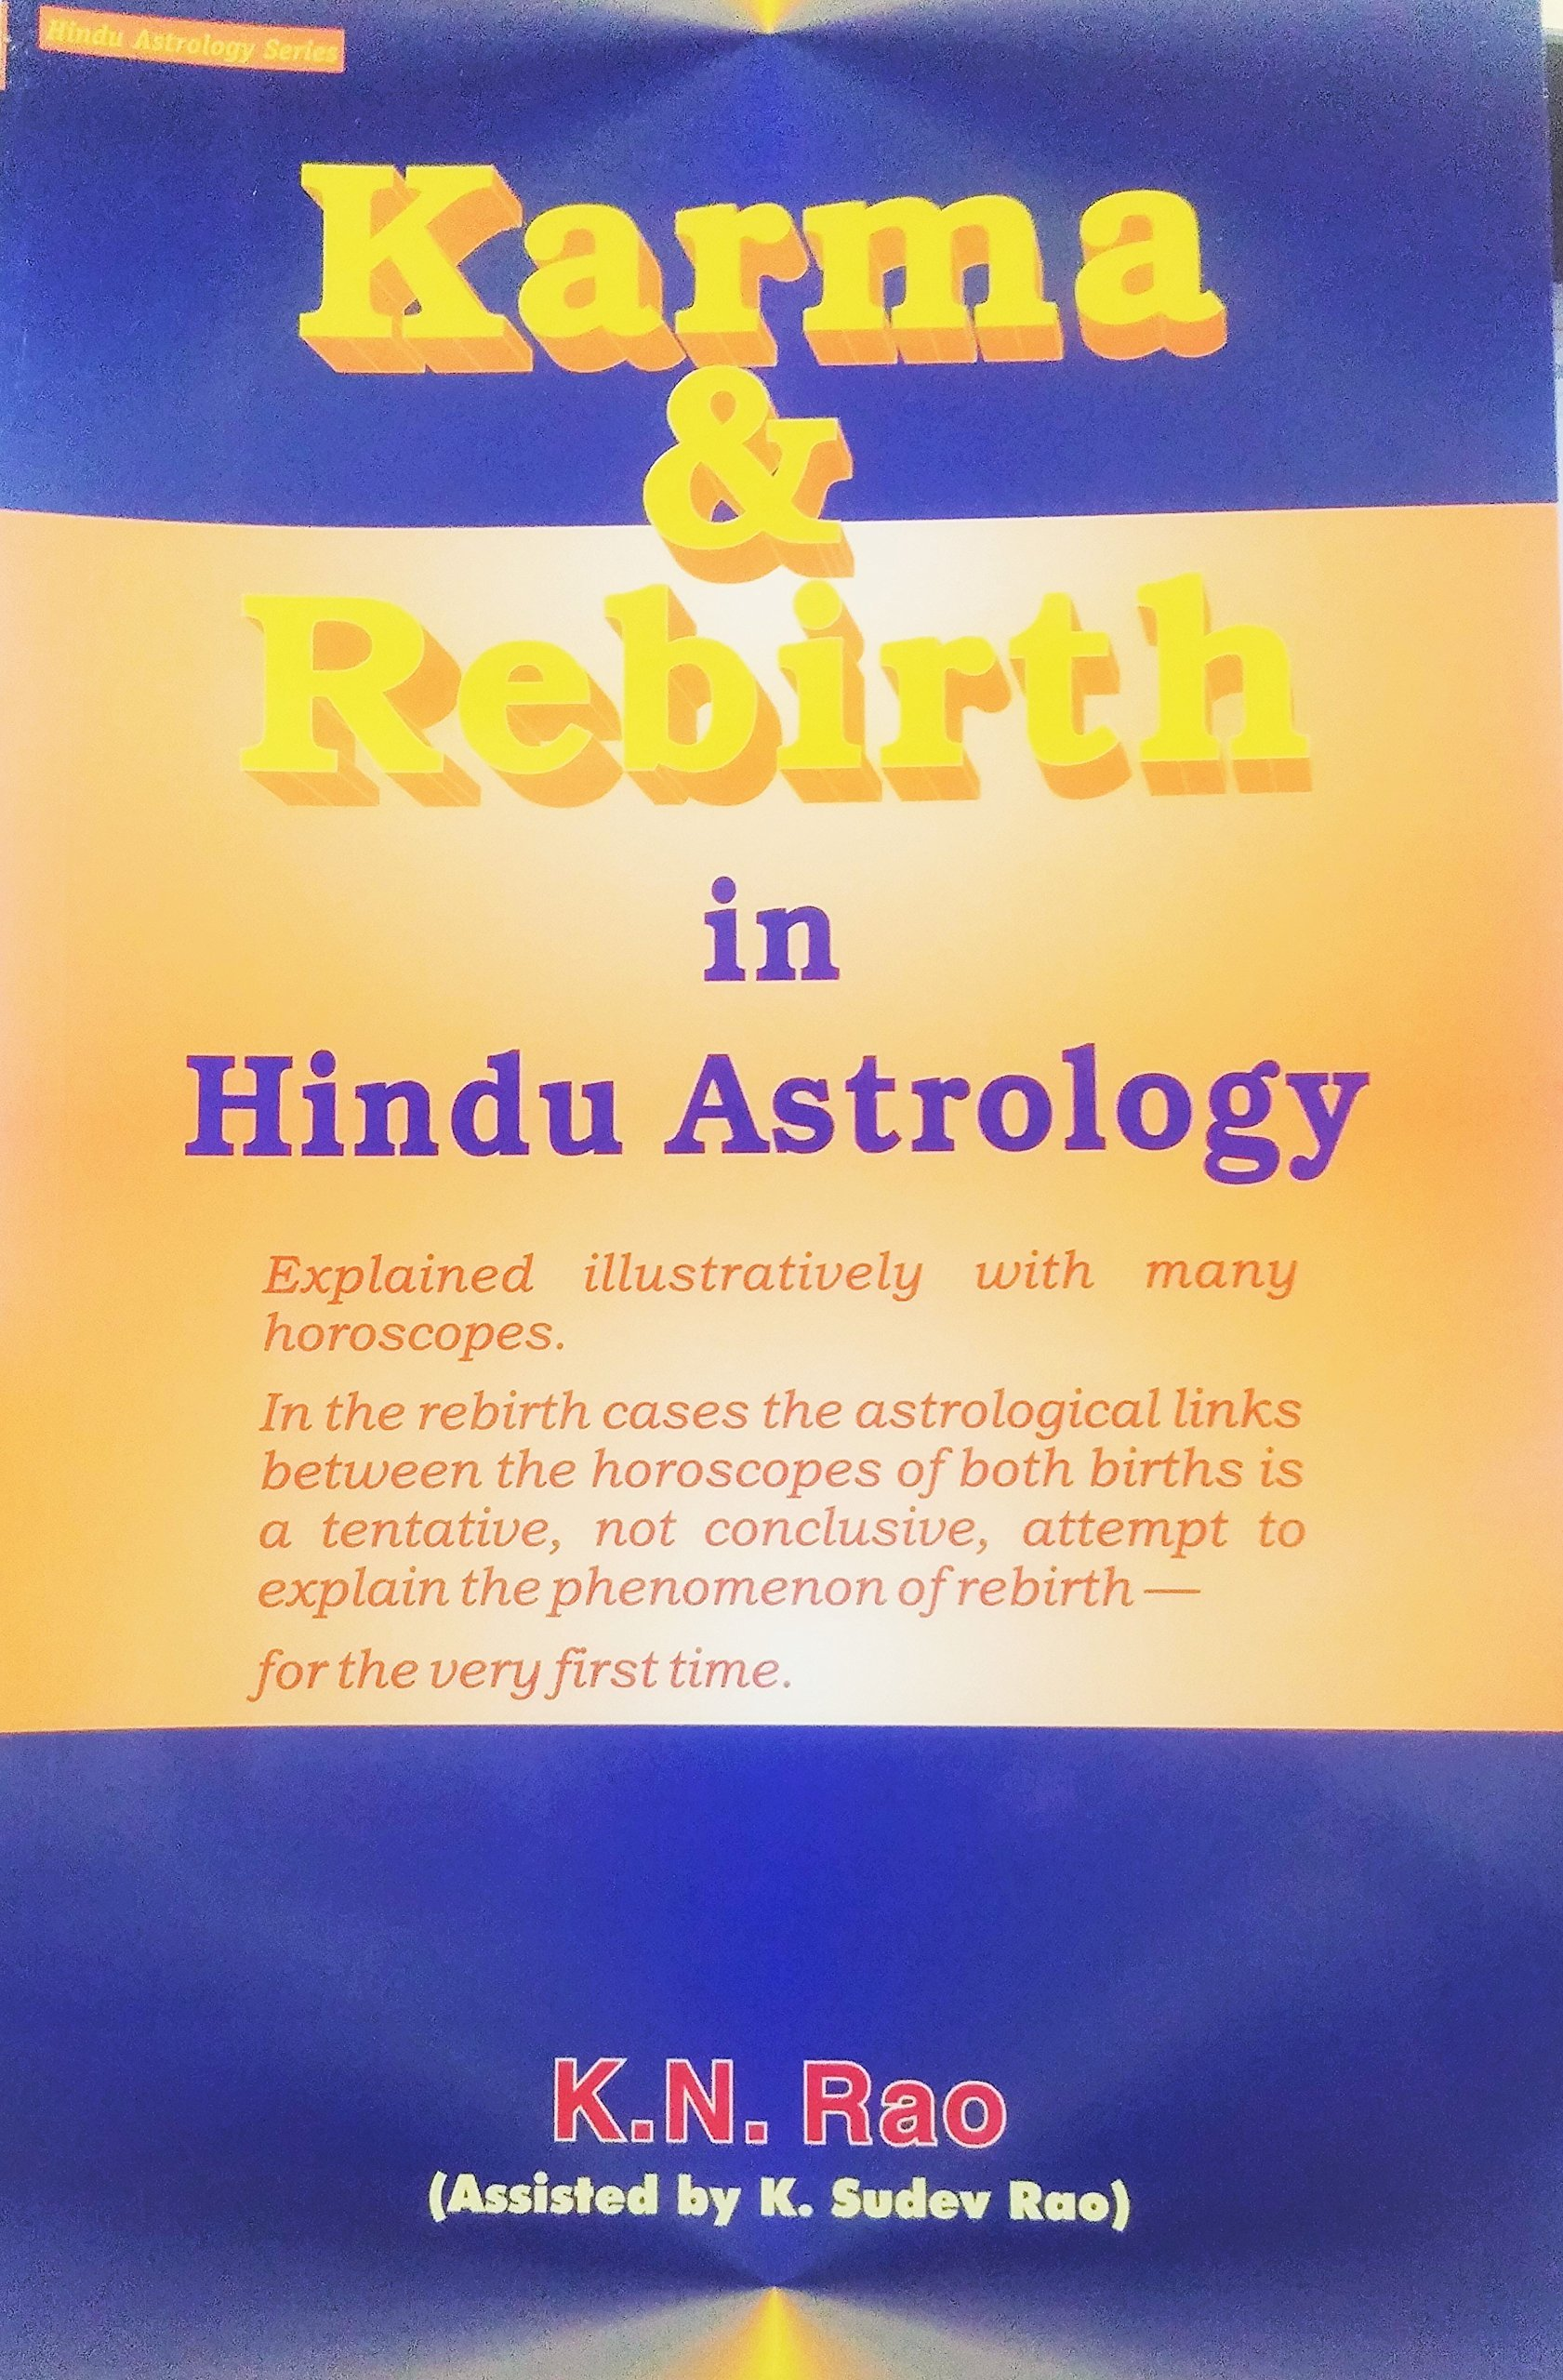 Karma And Rebirth In Hindu Astrology Explained Illustratively With Many Horoscopes Hindu Astrology Series K N Rao 9788189221706 Amazon Com Books Sun, moon, asc personal daily horoscope transit chart calculator solar. karma and rebirth in hindu astrology